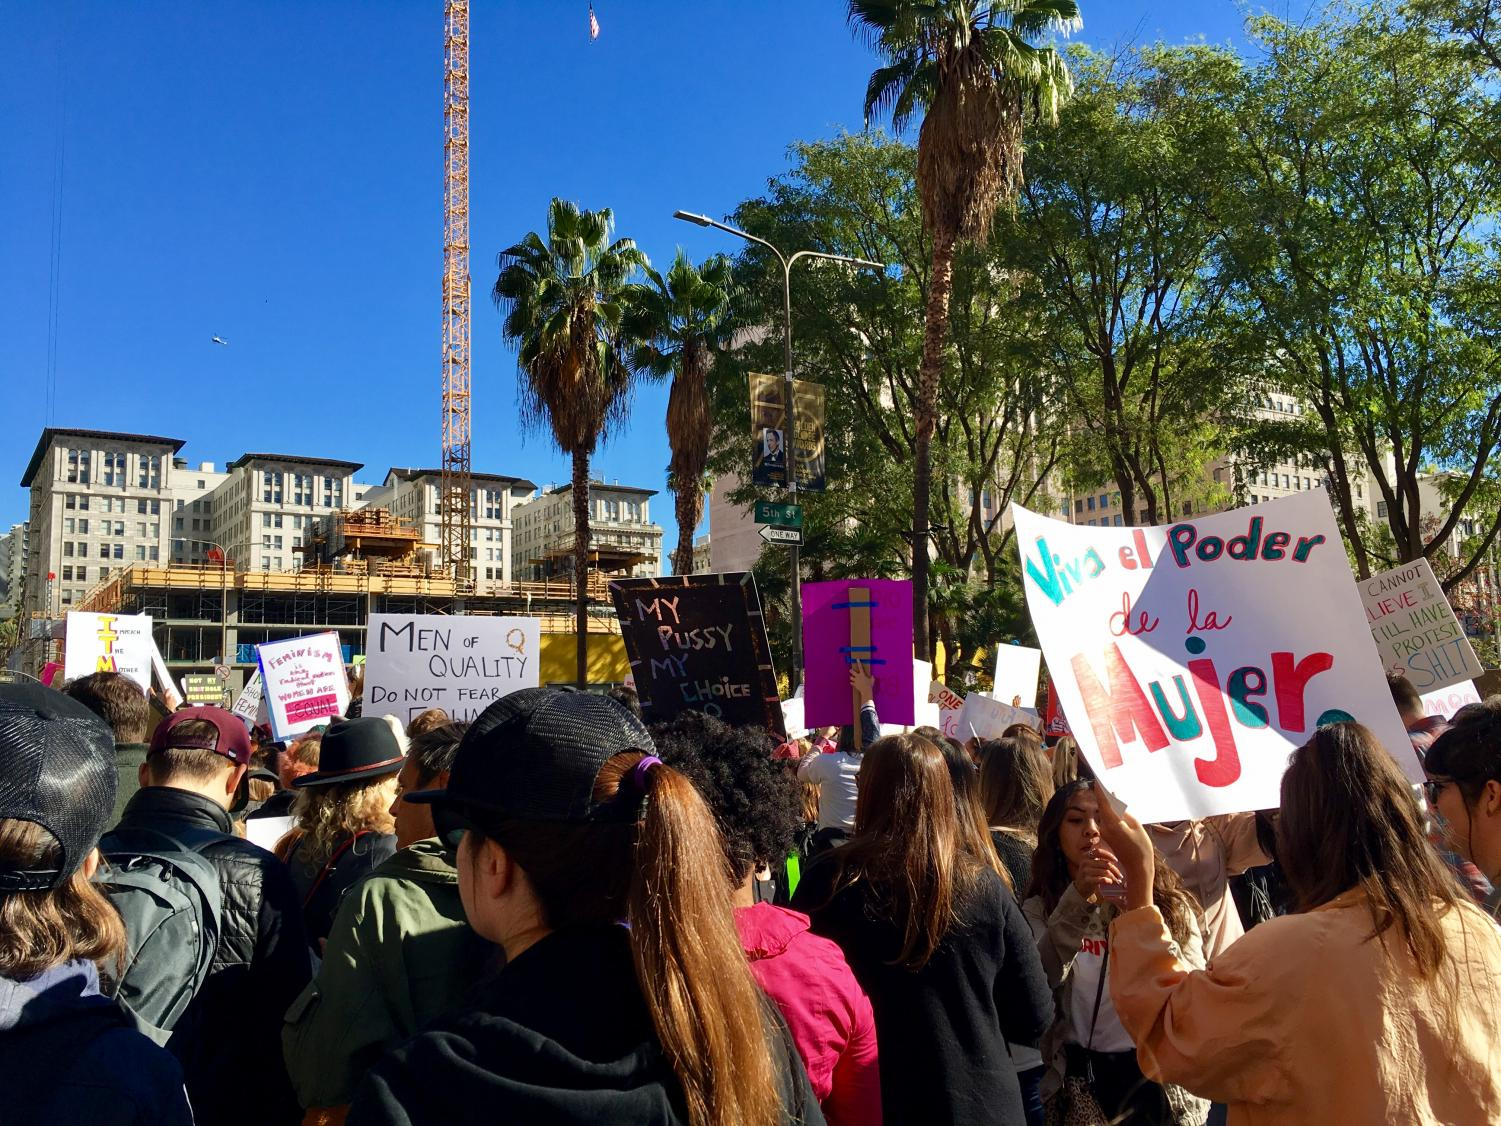 Los+Angeles+citizens+took+over+the+streets+of+Downtown+LA+for+the+Women%27s+March.+Around+500%2C000+people+participated.+